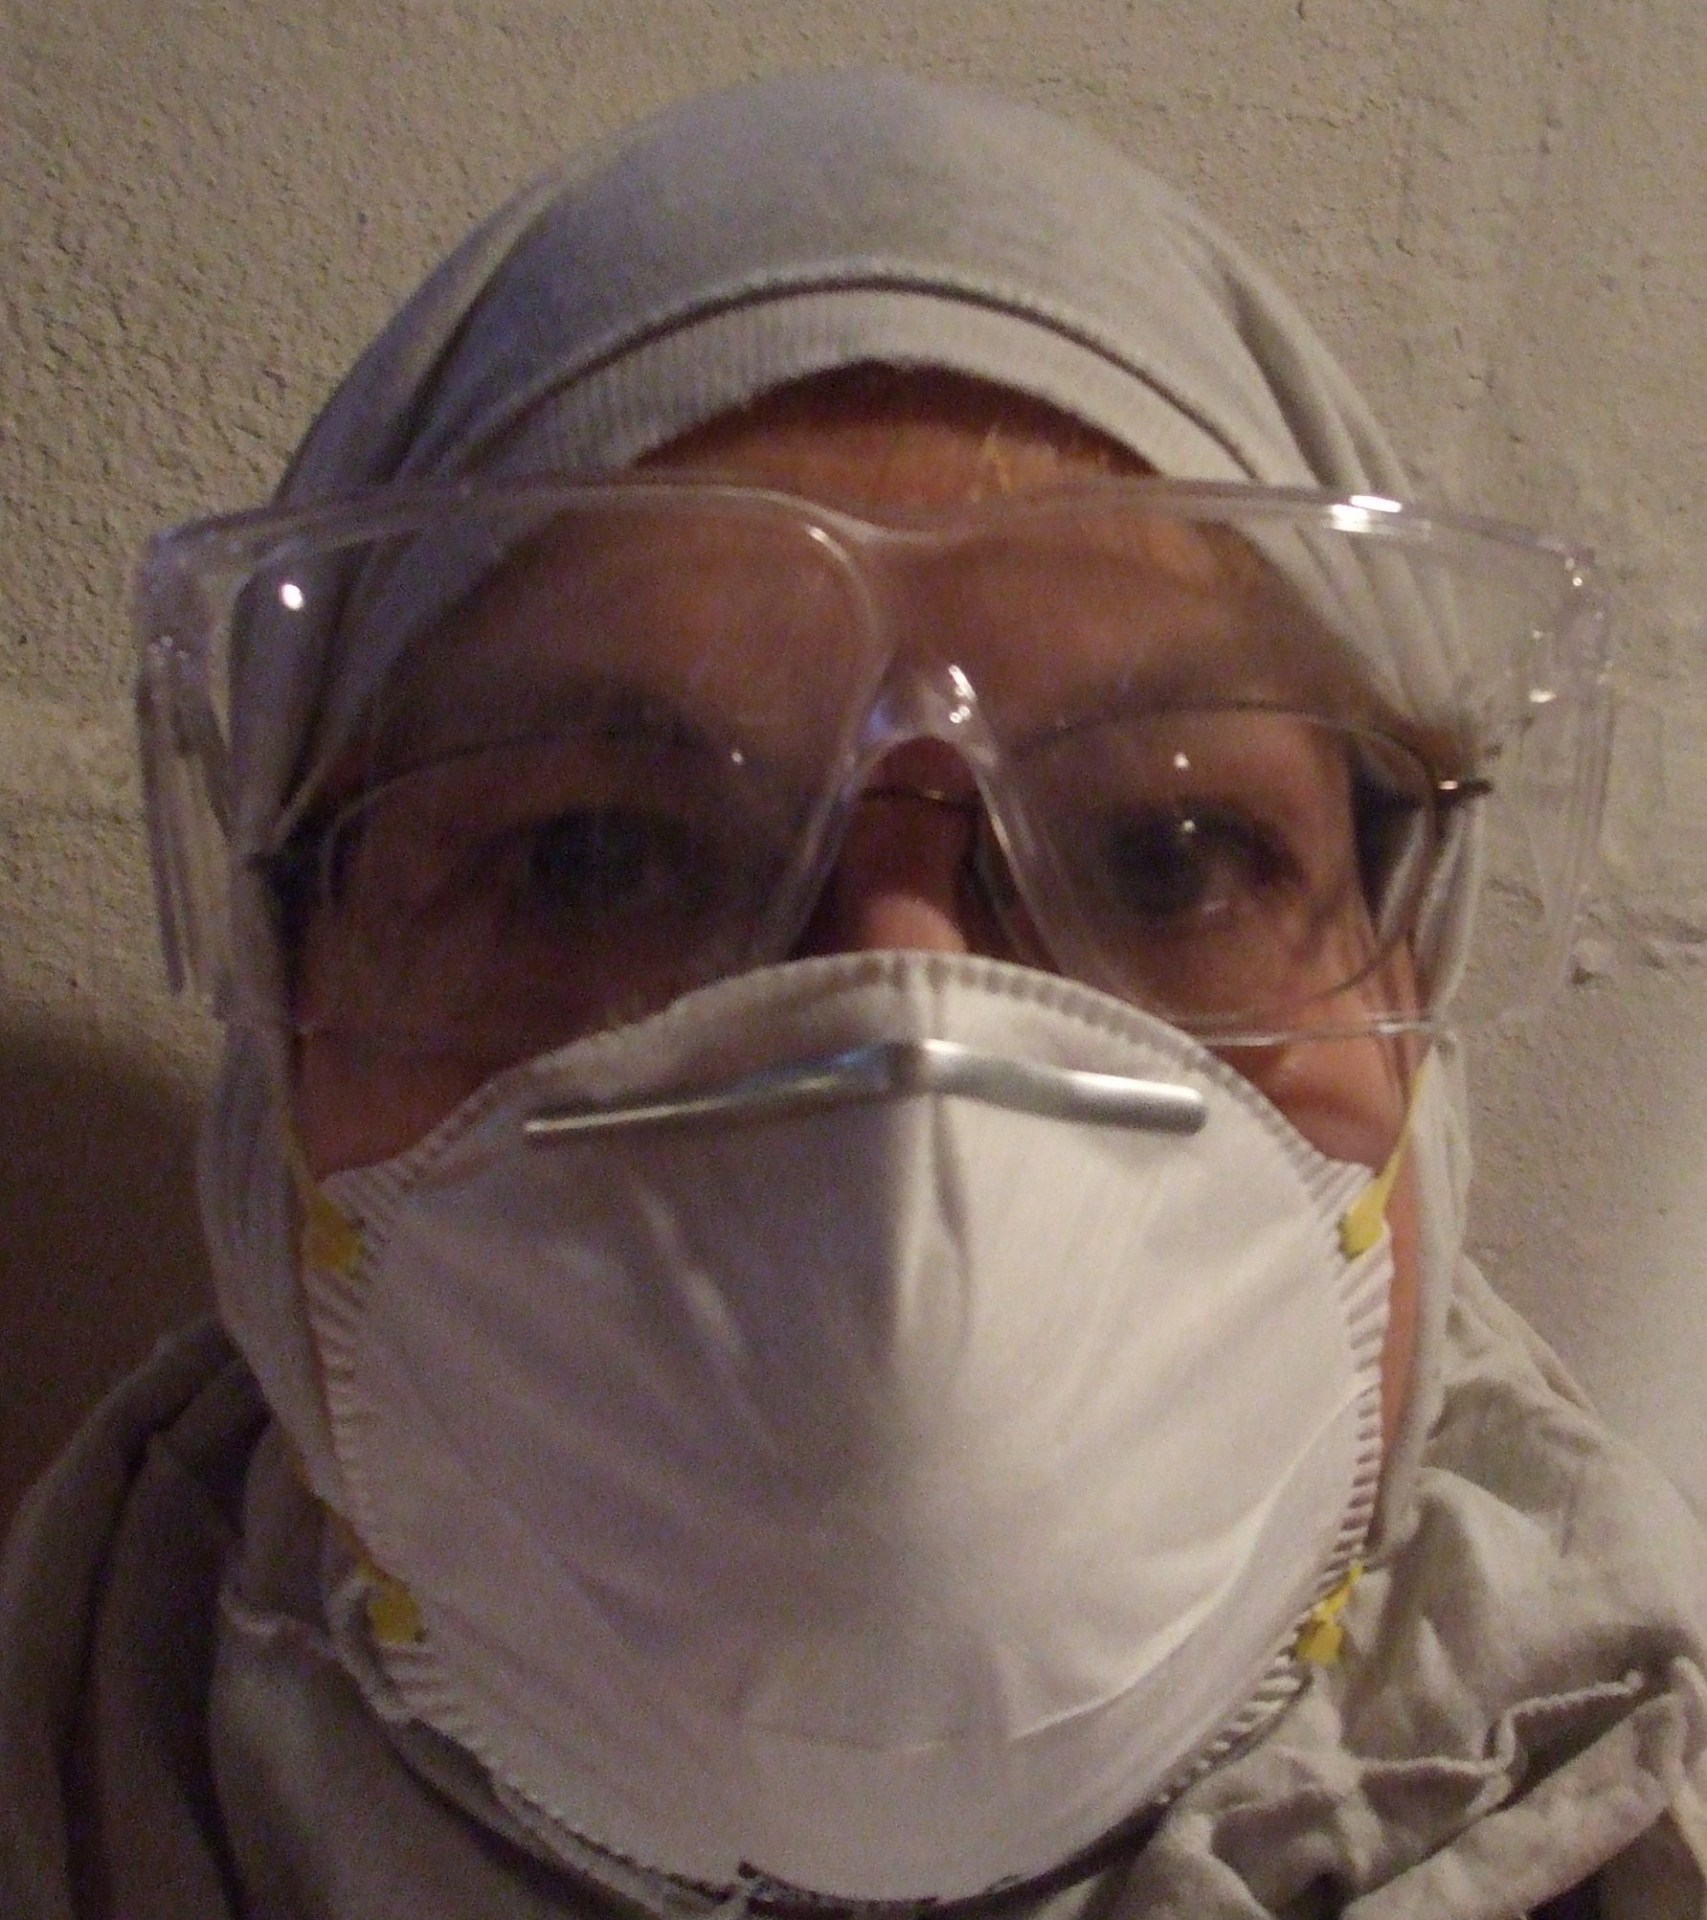 Woman with safety googles and dust mask